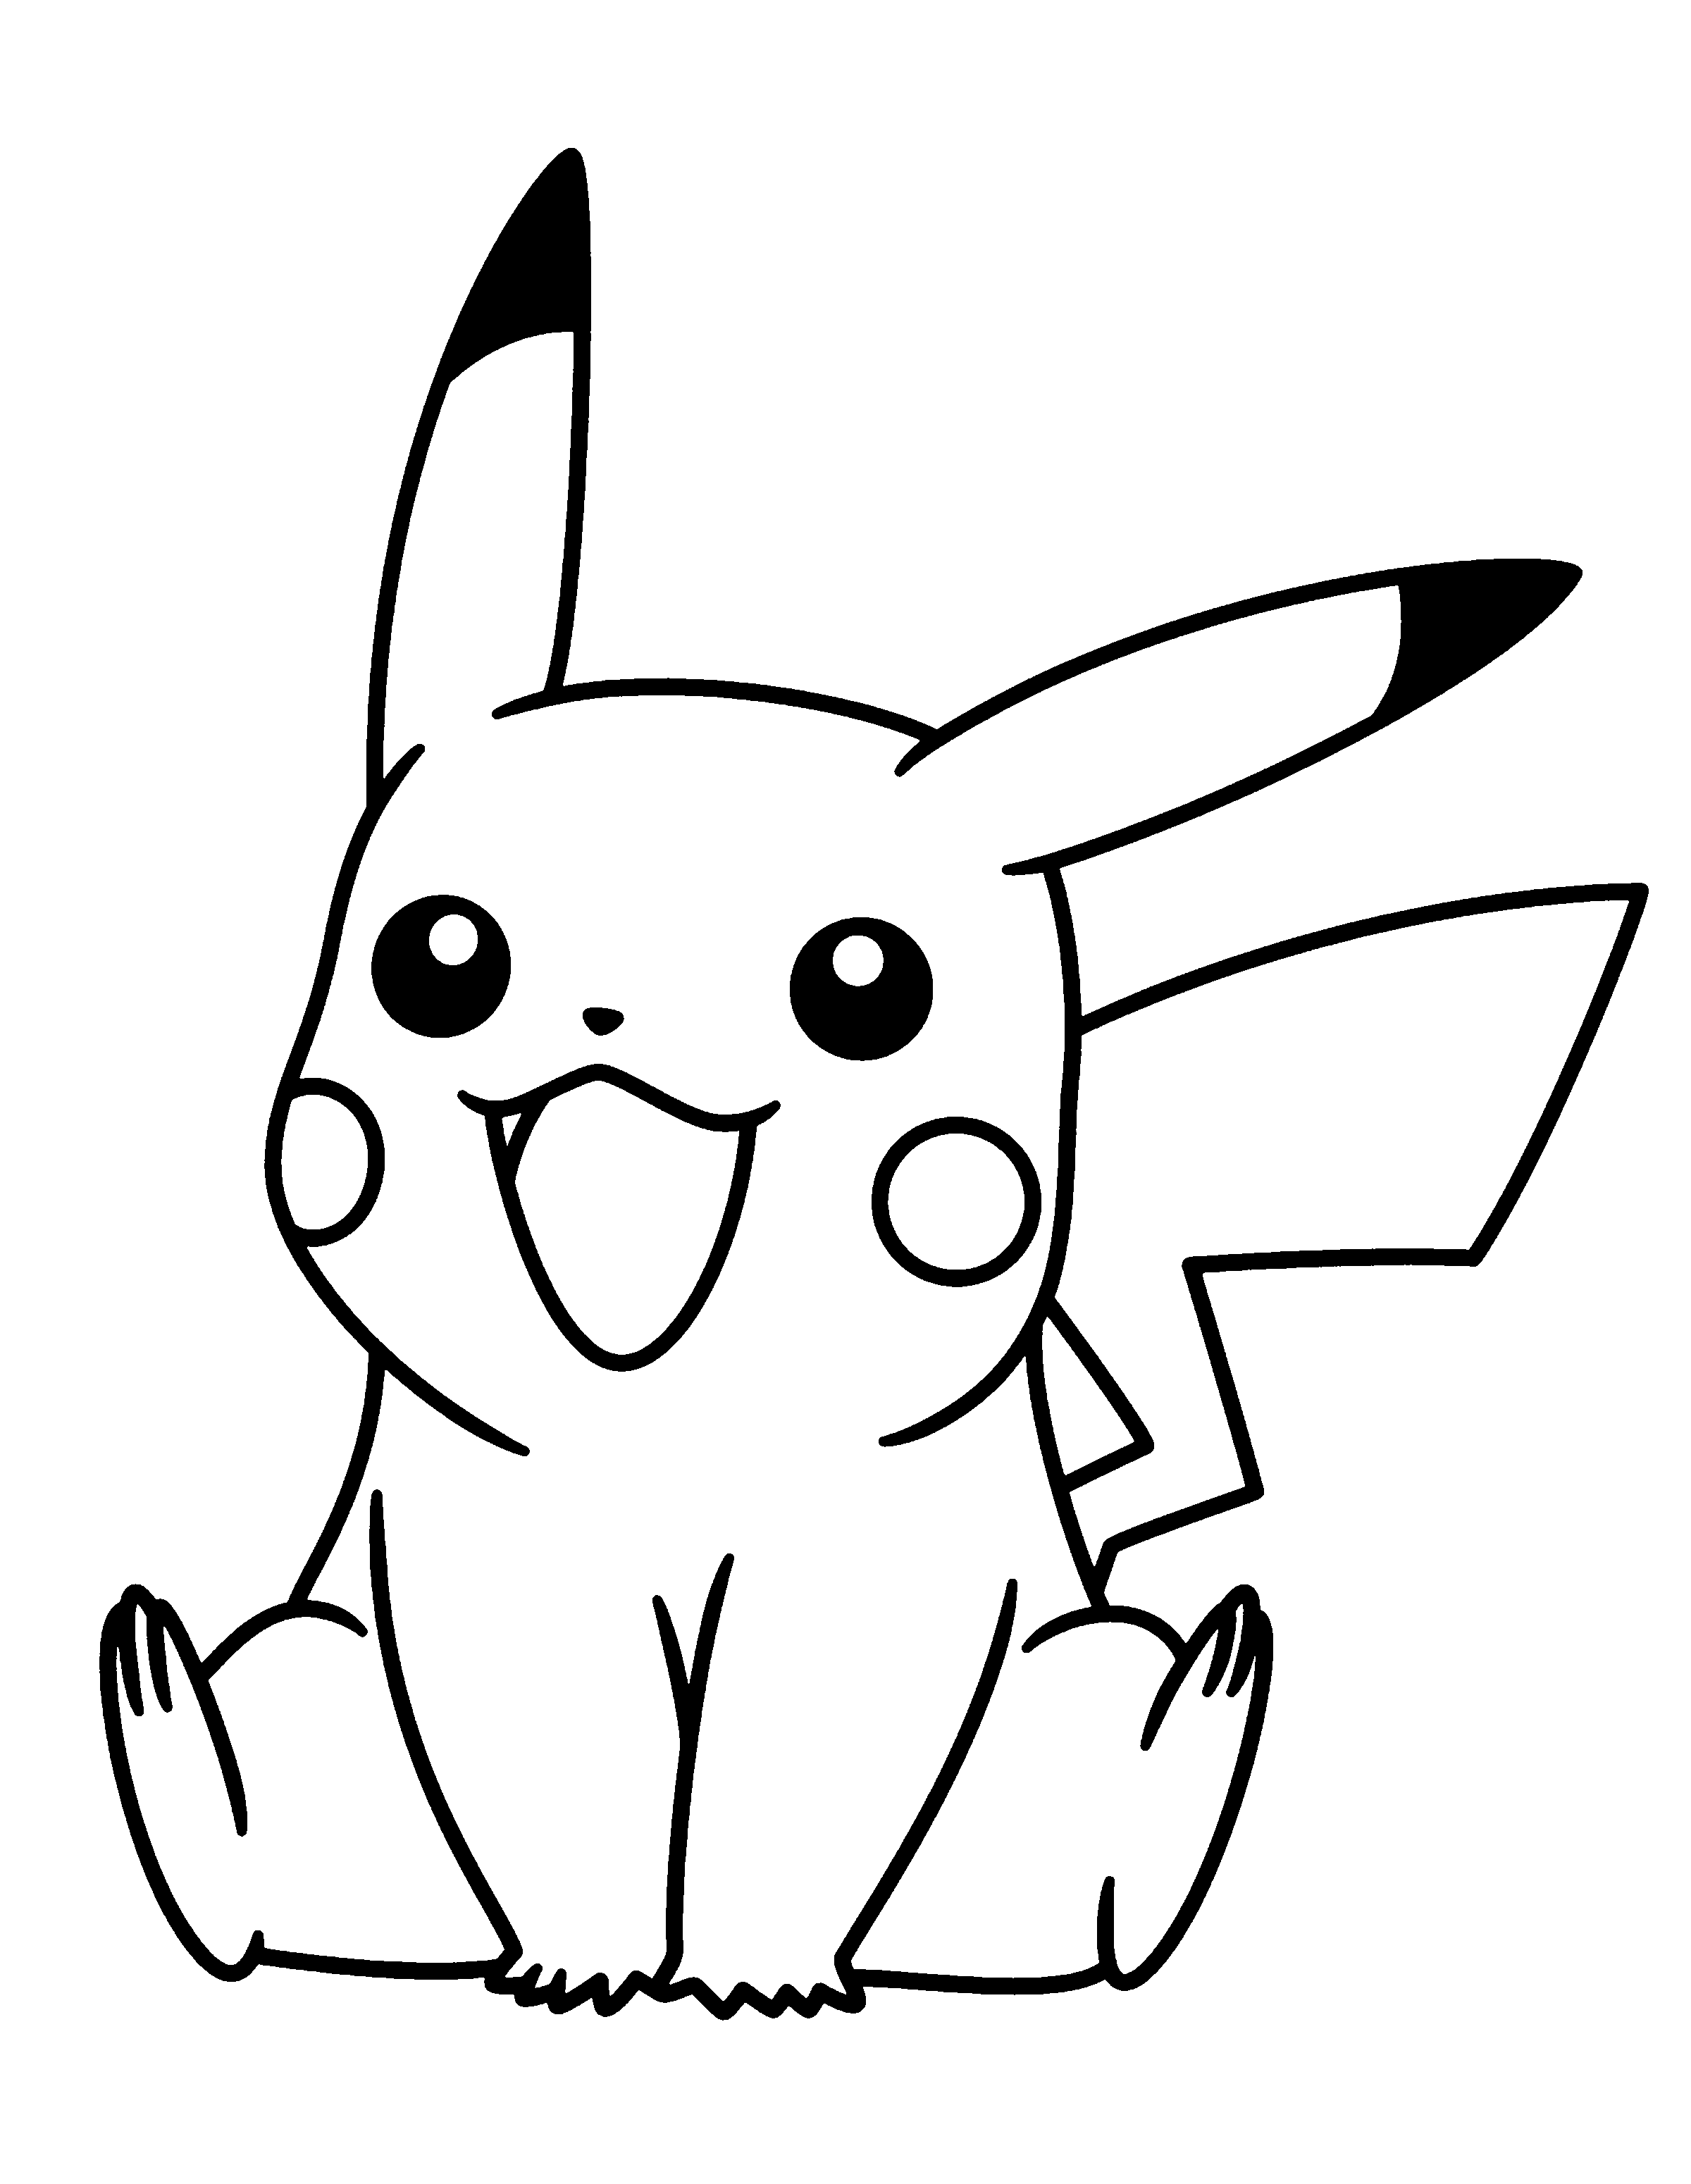 pokeman coloring pages pokemon lucario coloring pages download and print for free pokeman pages coloring